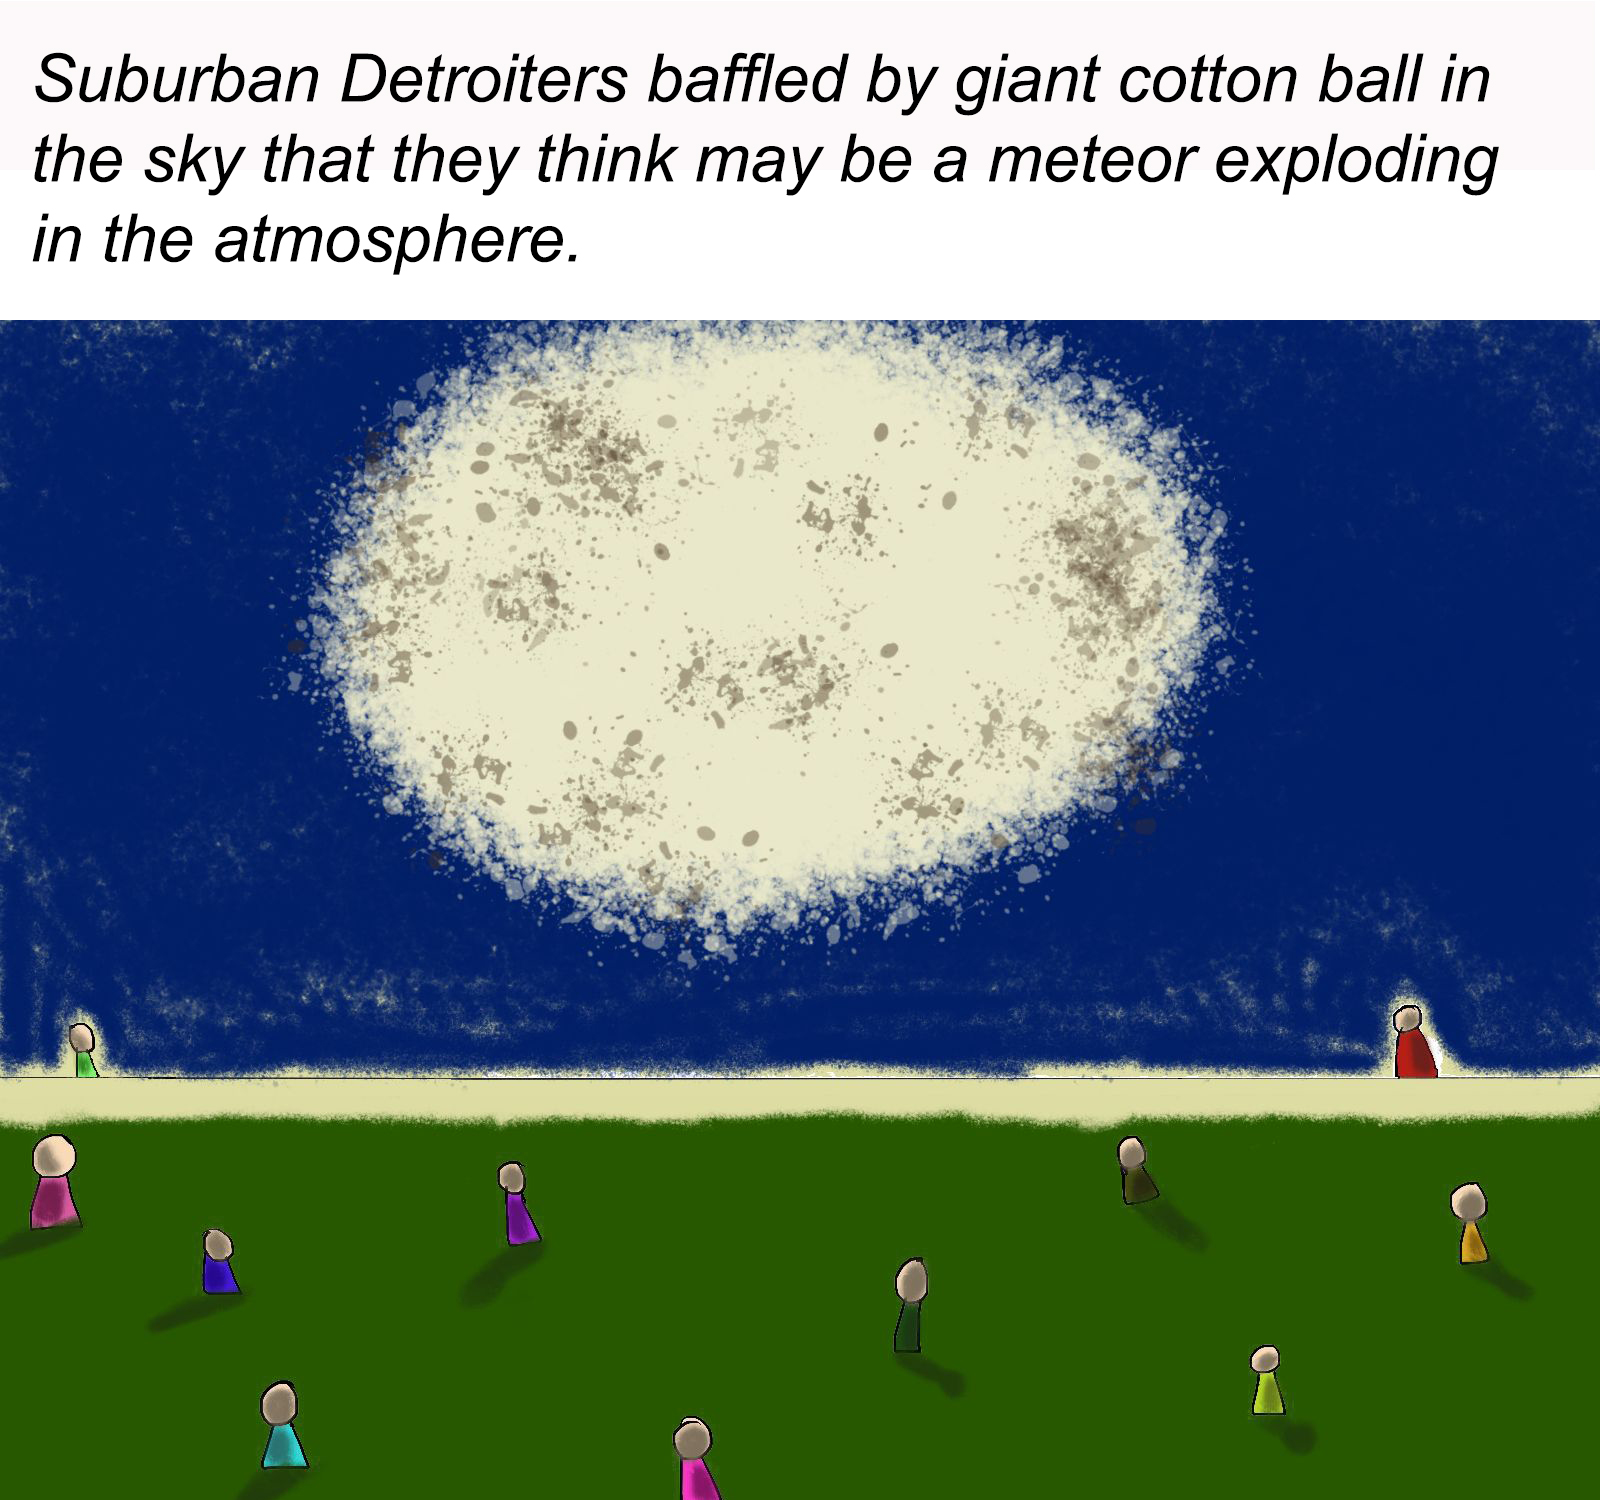 Comic says Metro Detroiters baffled by giant cotton ball in the sky that they think may be a meteor explosion